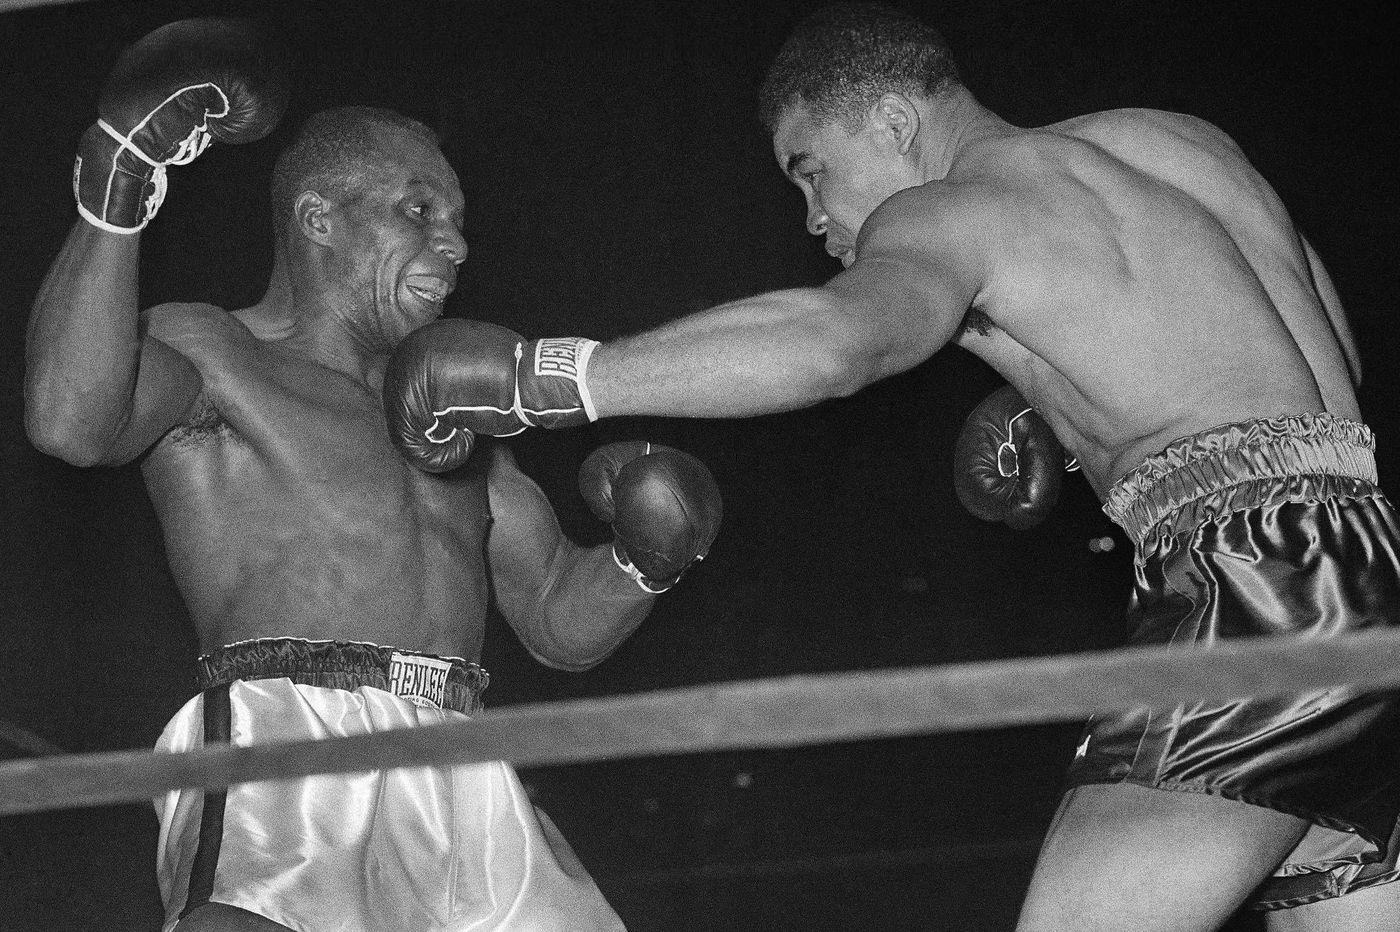 A statue of Jersey Joe Walcott, Camden's real-life 'Rocky,' to rise in the city he championed